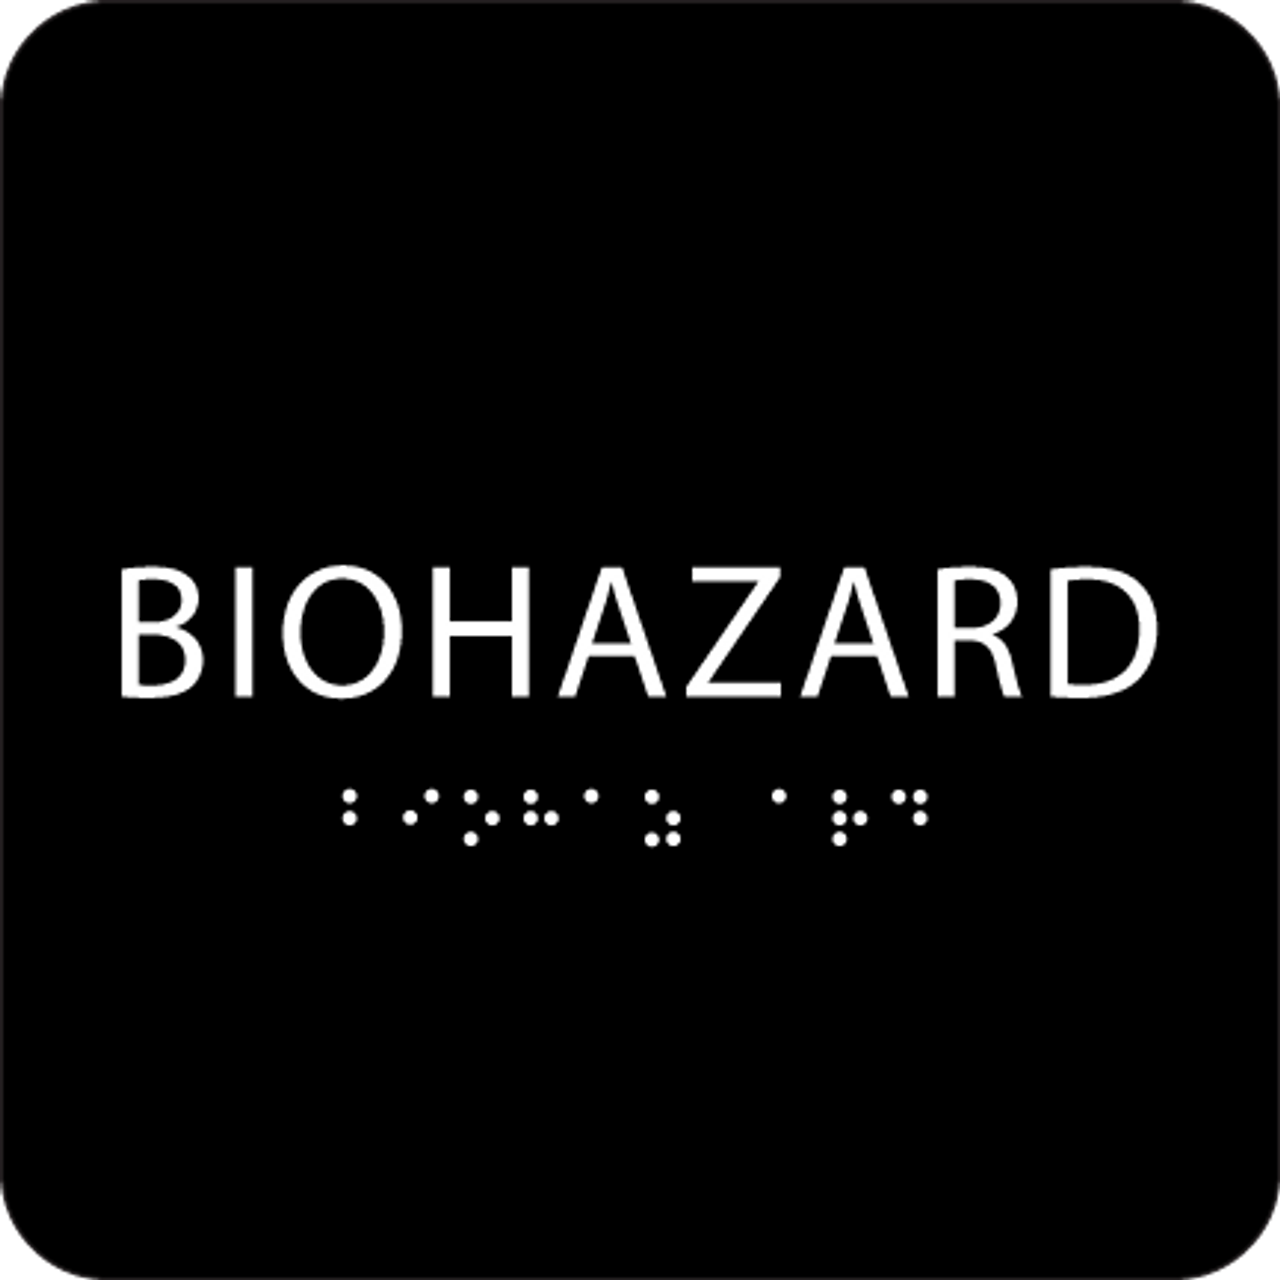 Black Biohazard ADA Sign